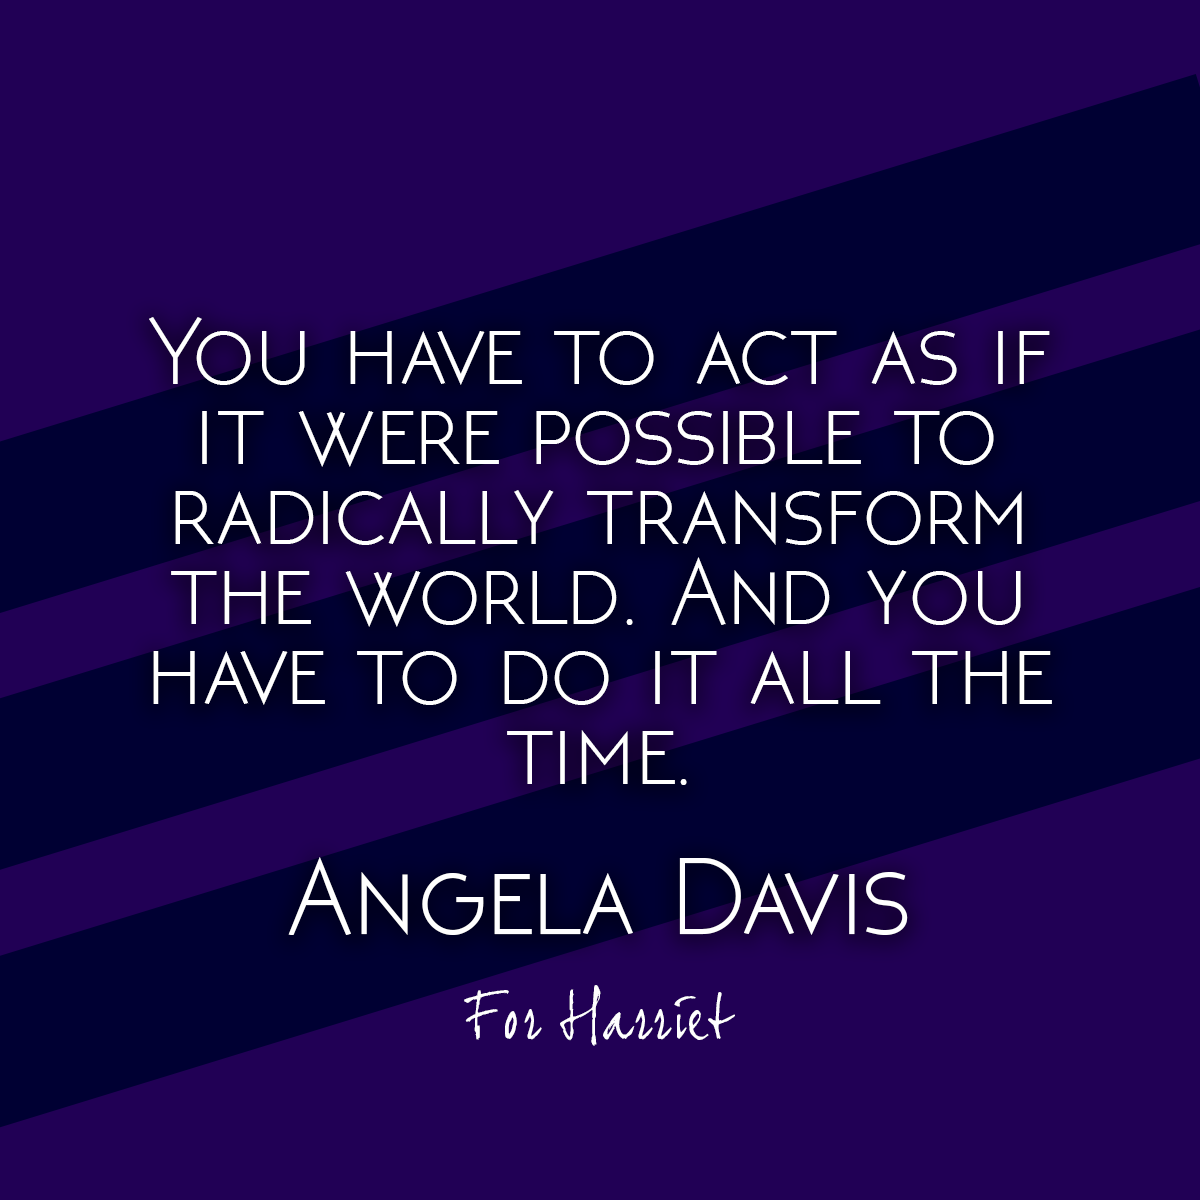 20 Quotes From Angela Davis That Inspire Us To Keep Up The